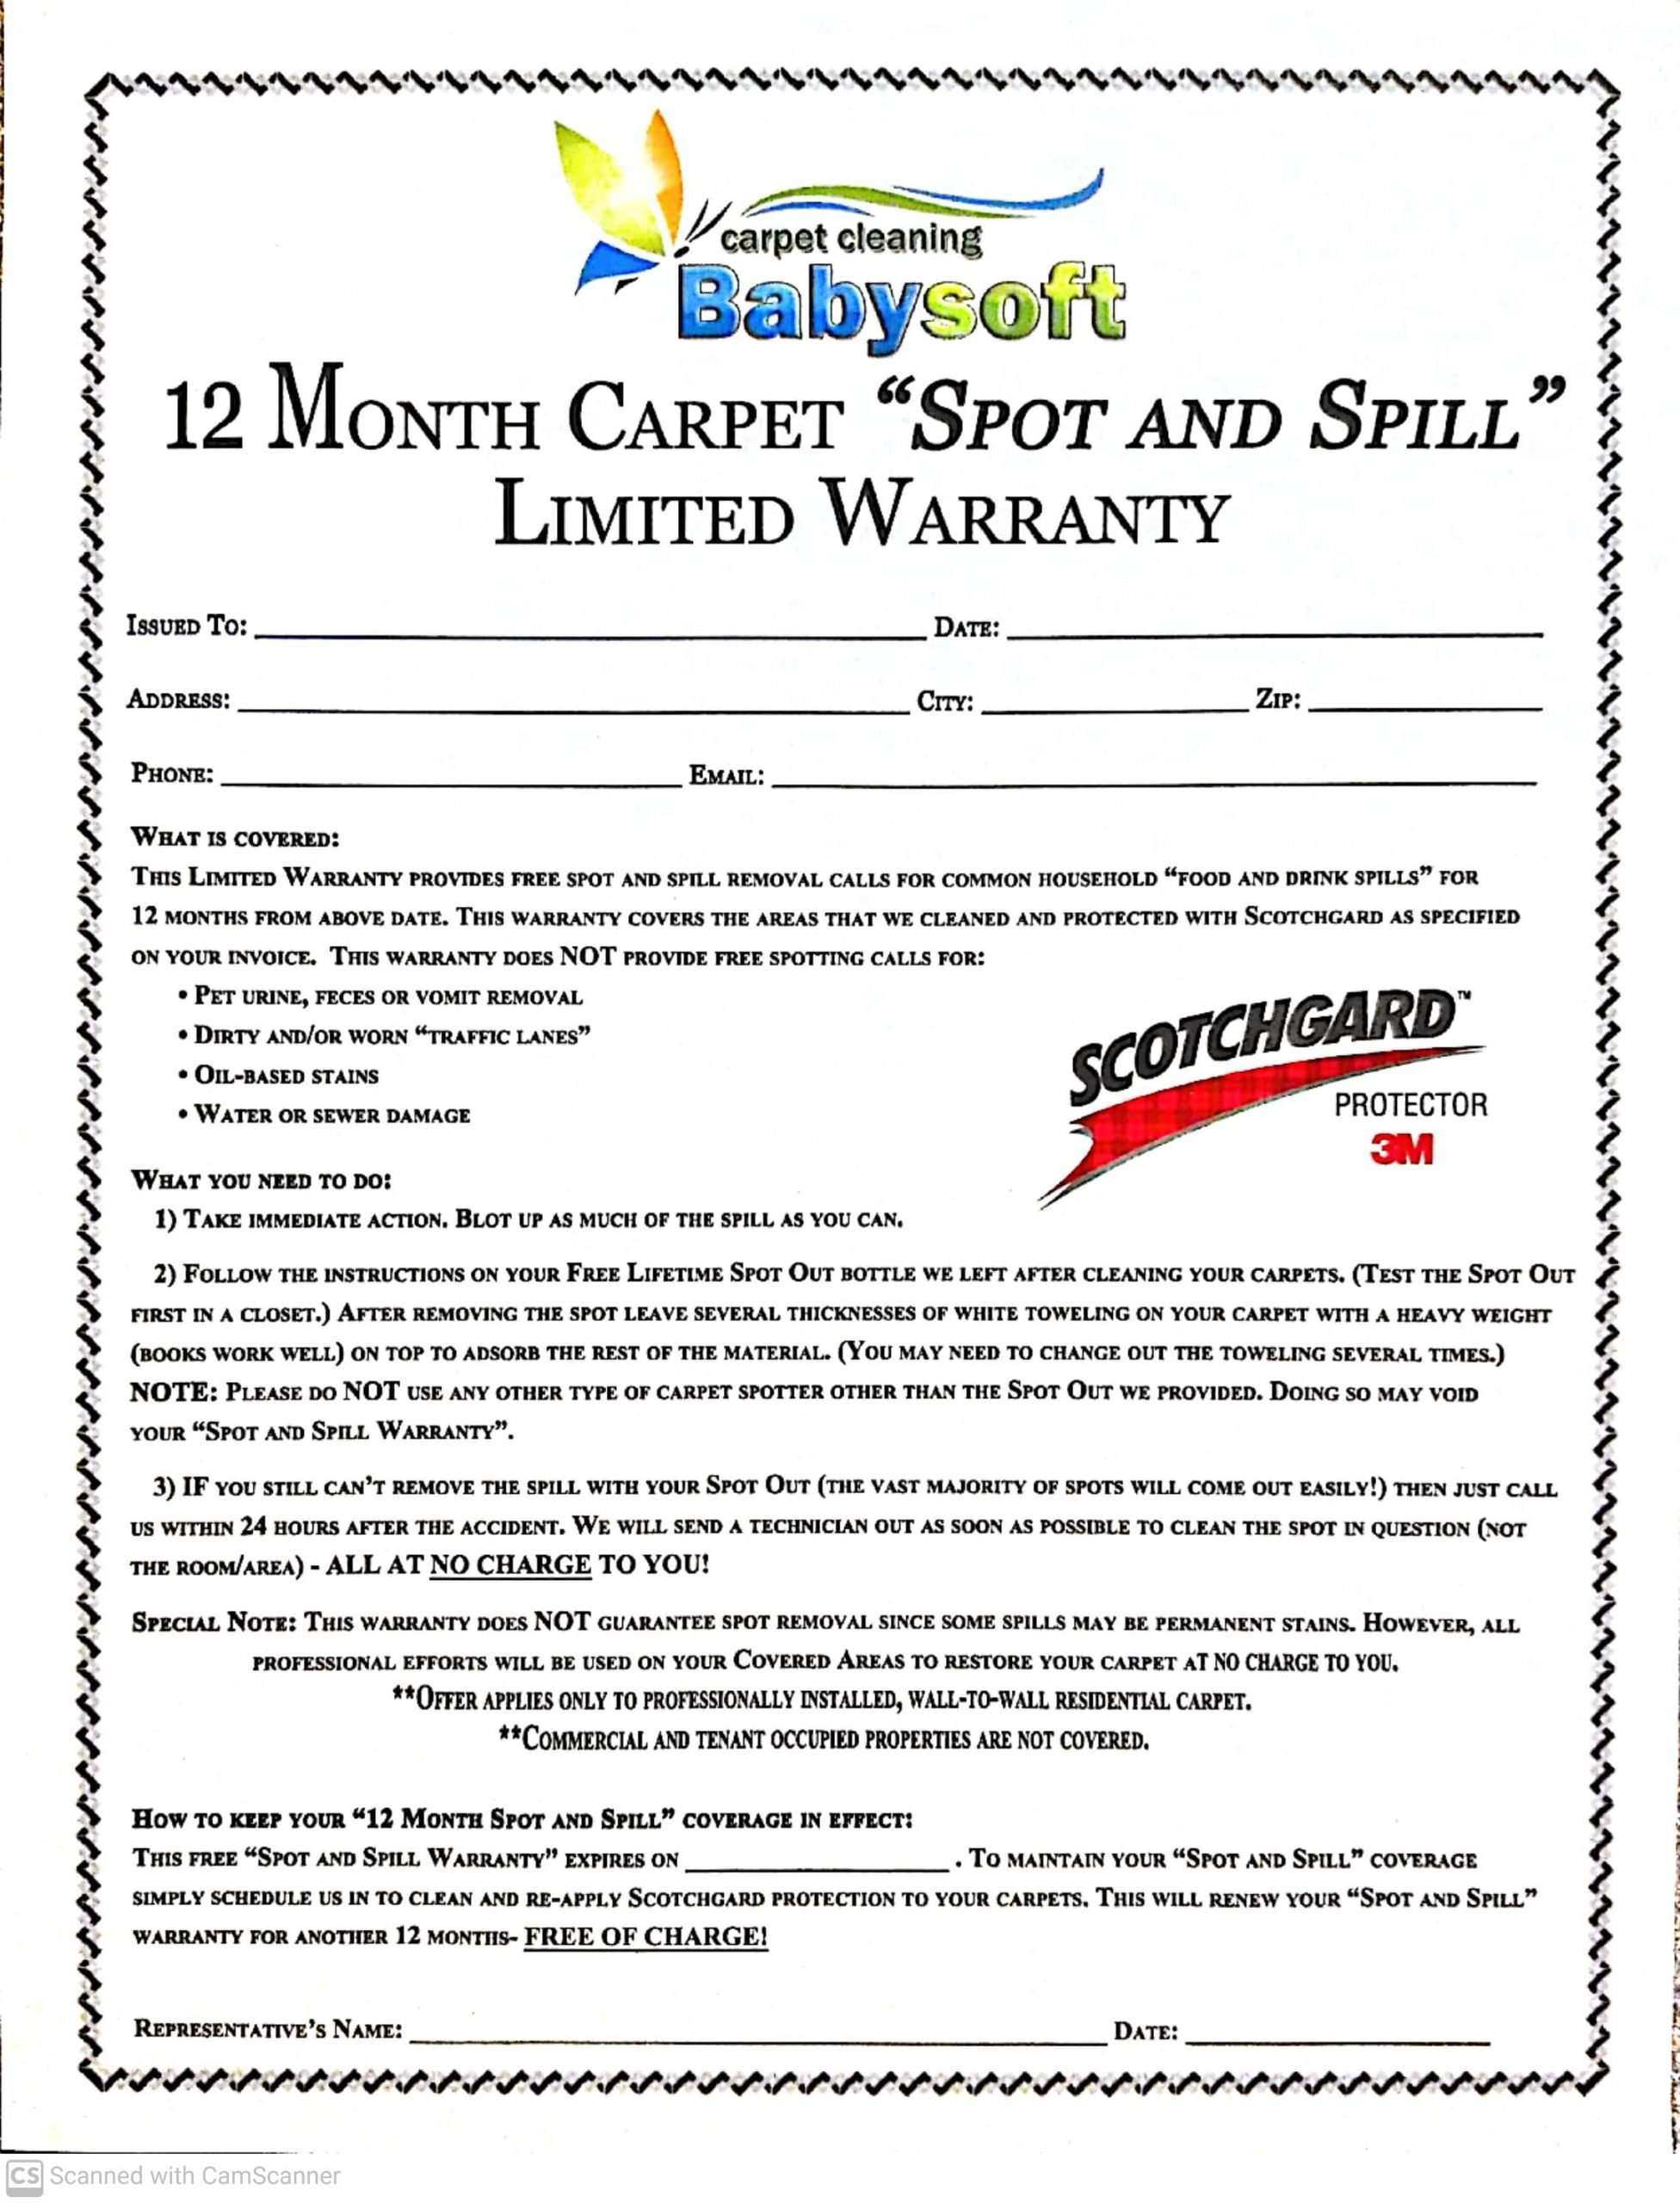 Scotchgard Spot and Spill Warranty